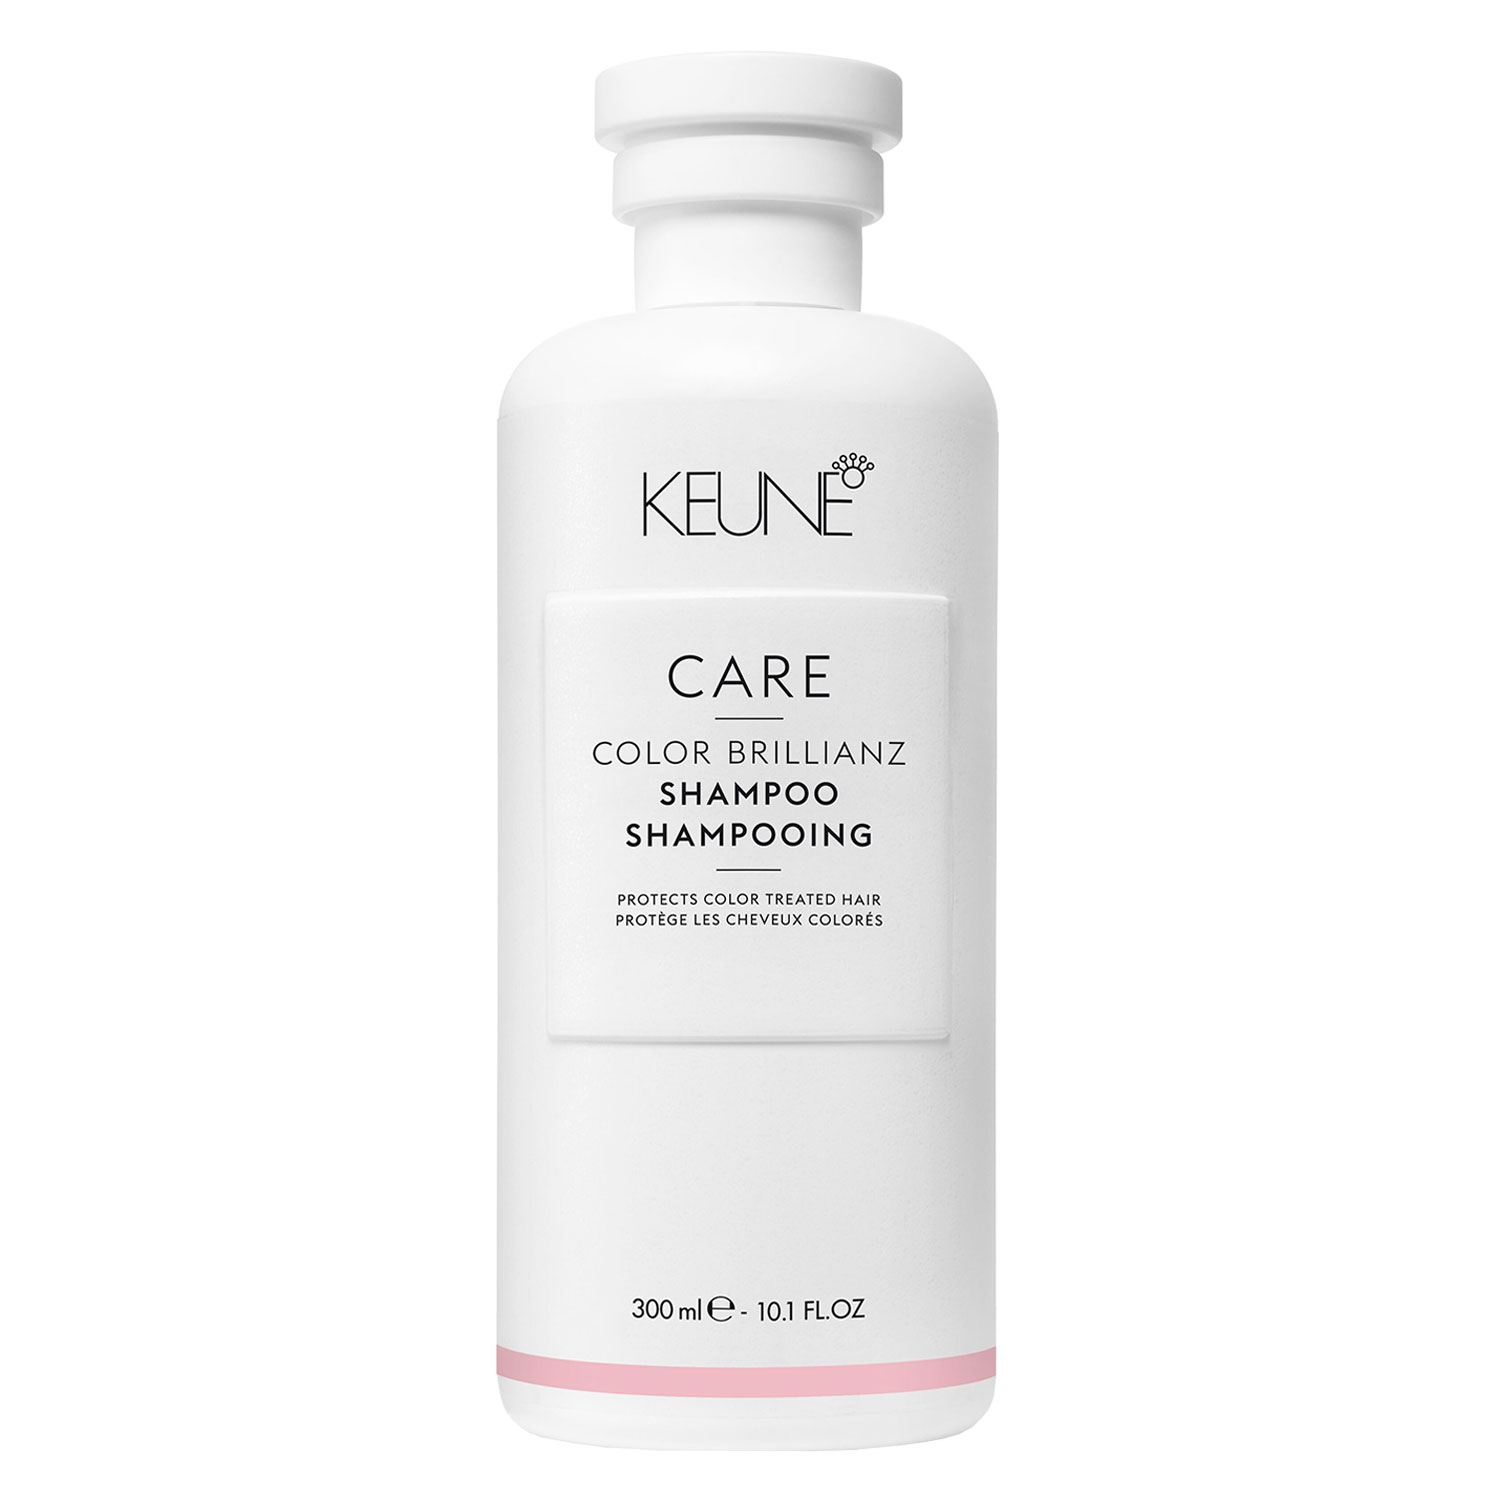 Keune Care - Color Brillianz Shampoo